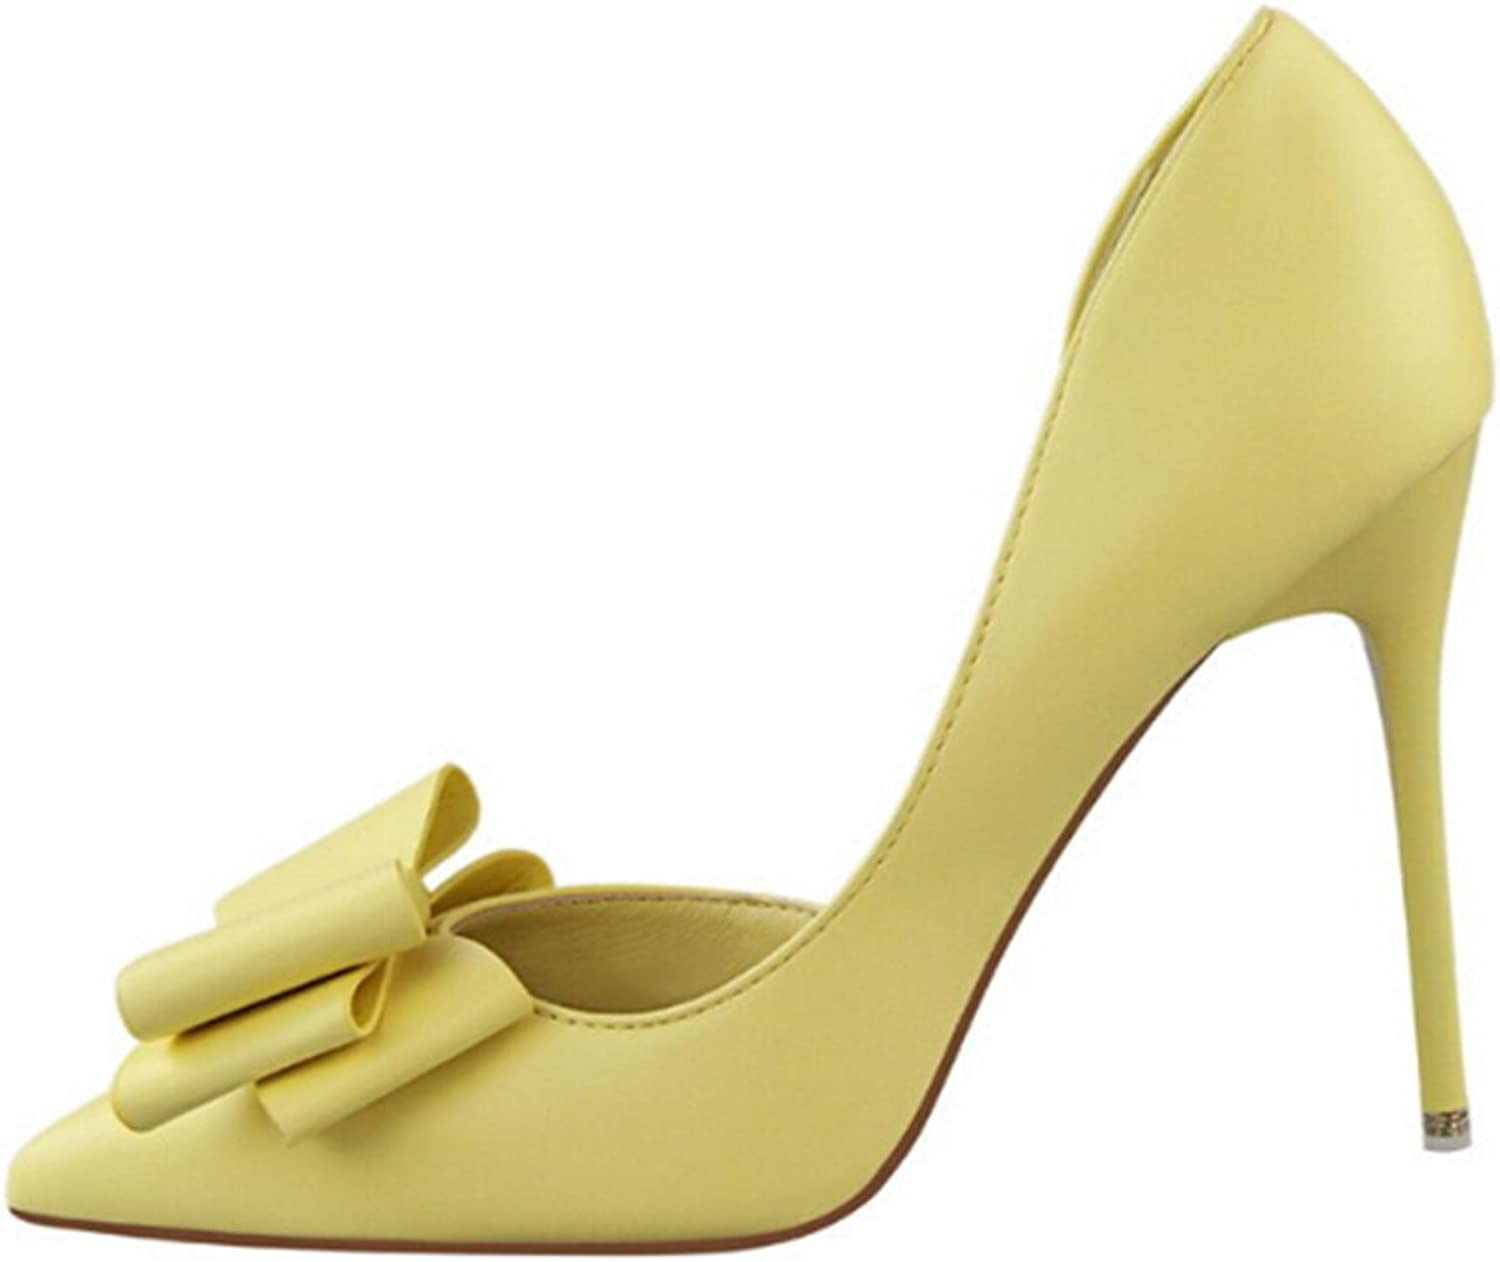 Starlit Women Sweet Bowknot High Heels shoes Pointed-Toe Stiletto Pumps